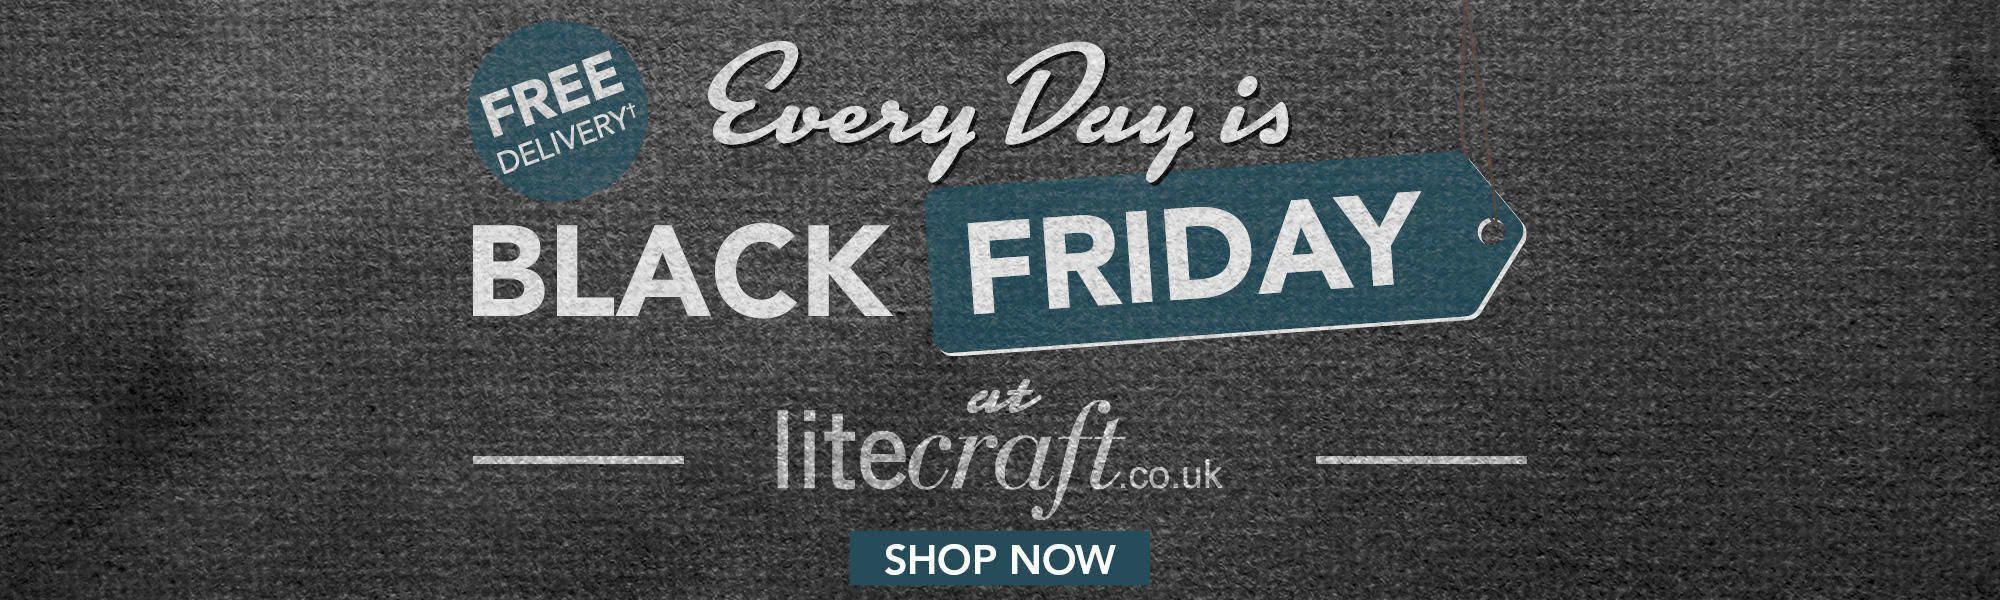 Every Day Black Friday at Litecraft